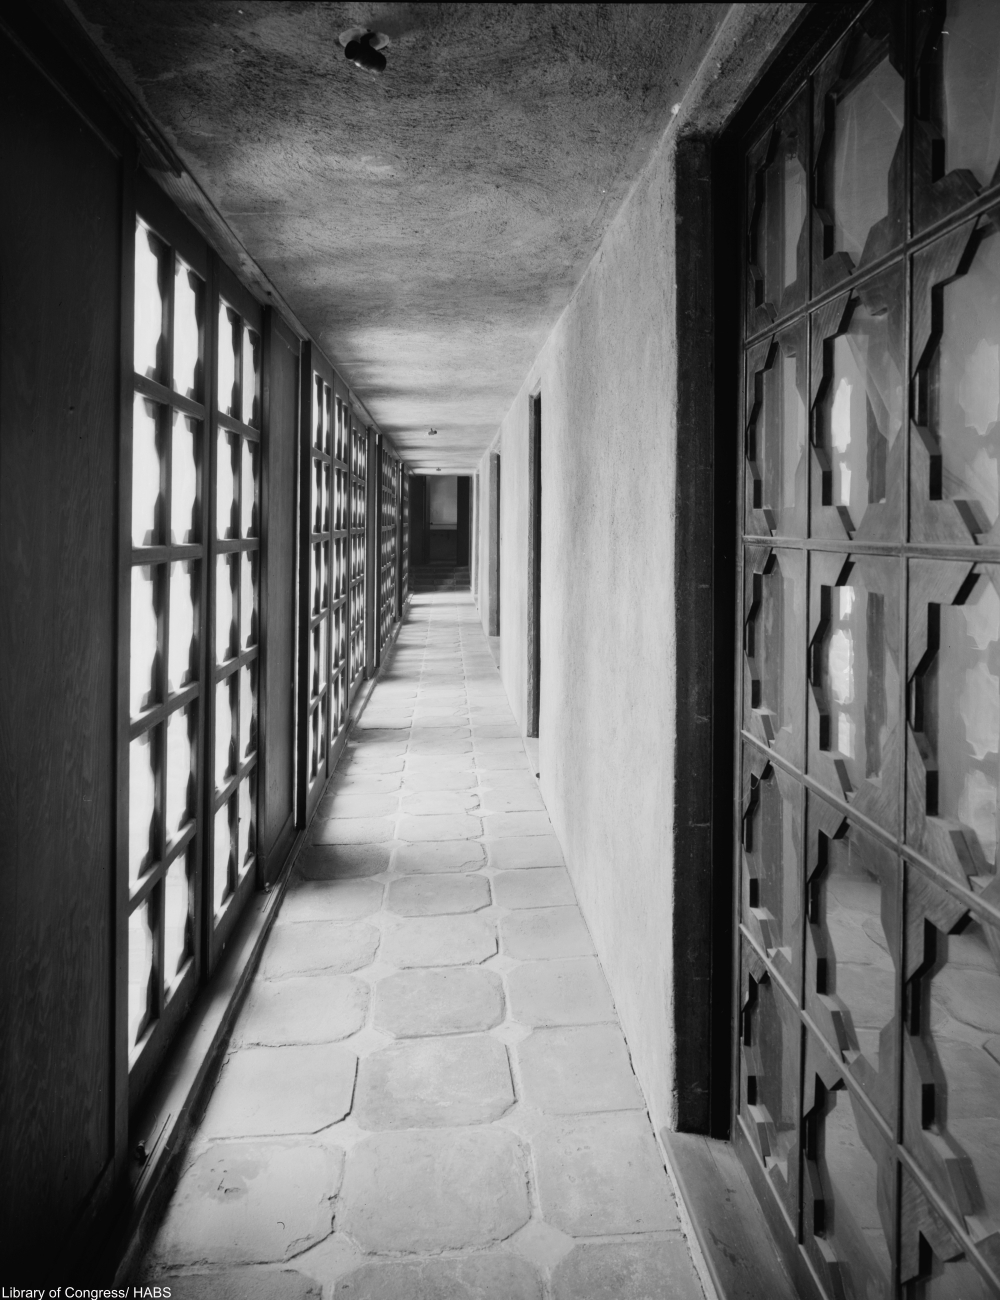 Take a Vintage Tour of the Art Deco with a Dark Secret